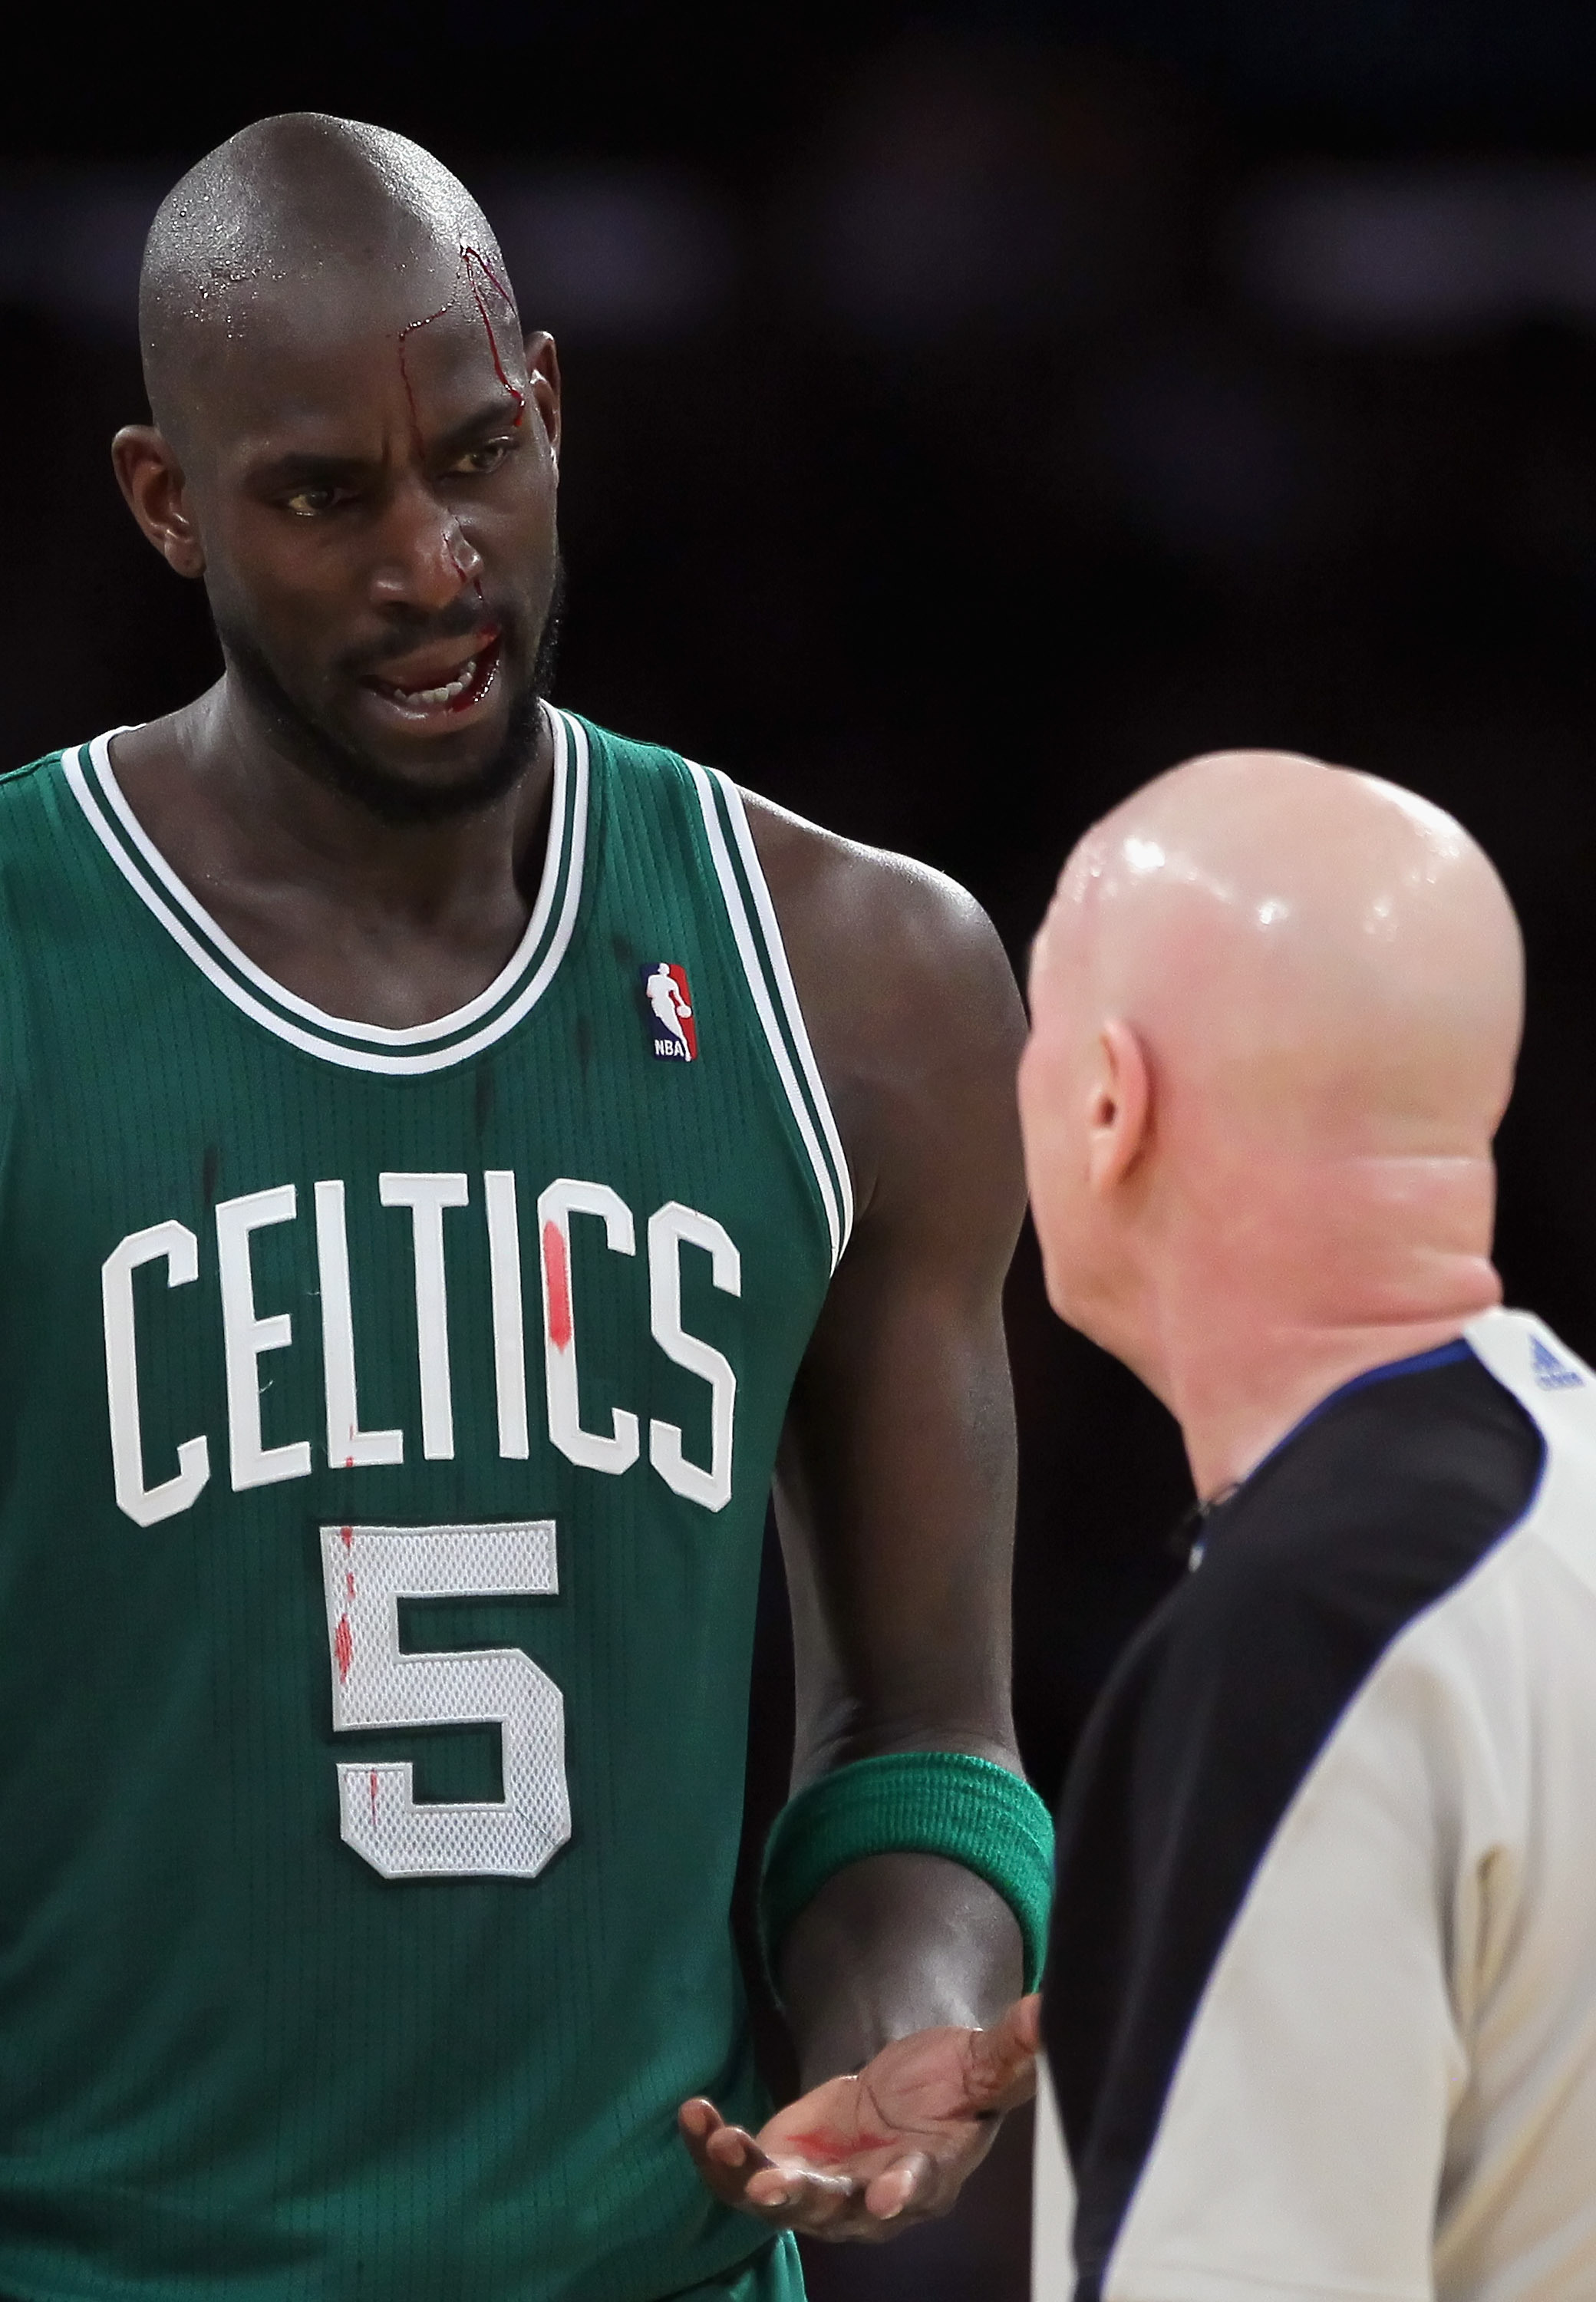 LOS ANGELES, CA - JANUARY 30:  Kevin Garnett #5 of the Boston Celtics talks with referee Joe Crawford after being cut above his left eye against the Los Angeles Lakers in the first half at Staples Center on January 30, 2011 in Los Angeles, California. The